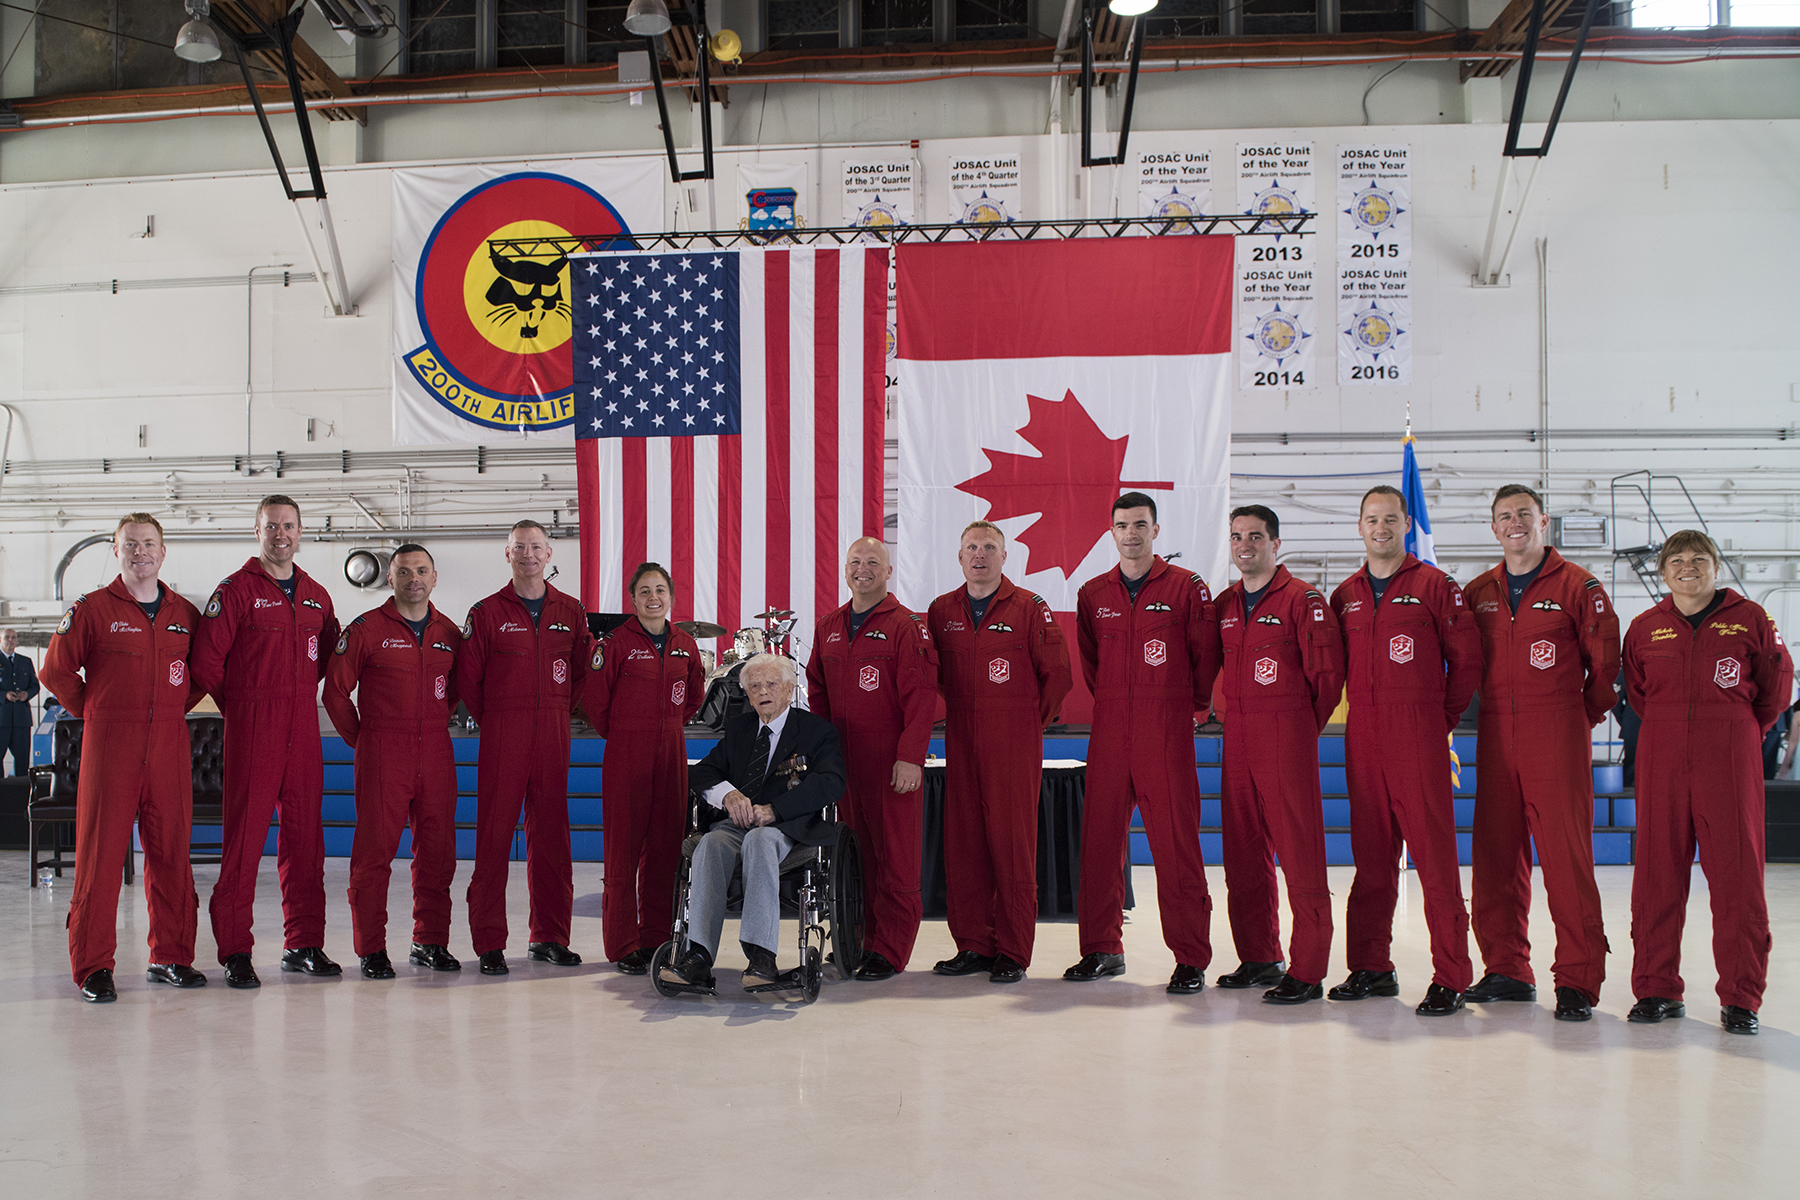 Members of the Canadian Forces aerial demonstration team The Snowbirds pause for a photograph with Second World War Squadron Leader George Sweanor (retired), 98, during the North American Aerospace Defense Command's (NORAD's) 60th anniversary ceremony at Peterson Air Force Base,  Colorado, on May 12, 2018. PHOTO: U.S. DoD, Staff Sergeant Emily Kenney